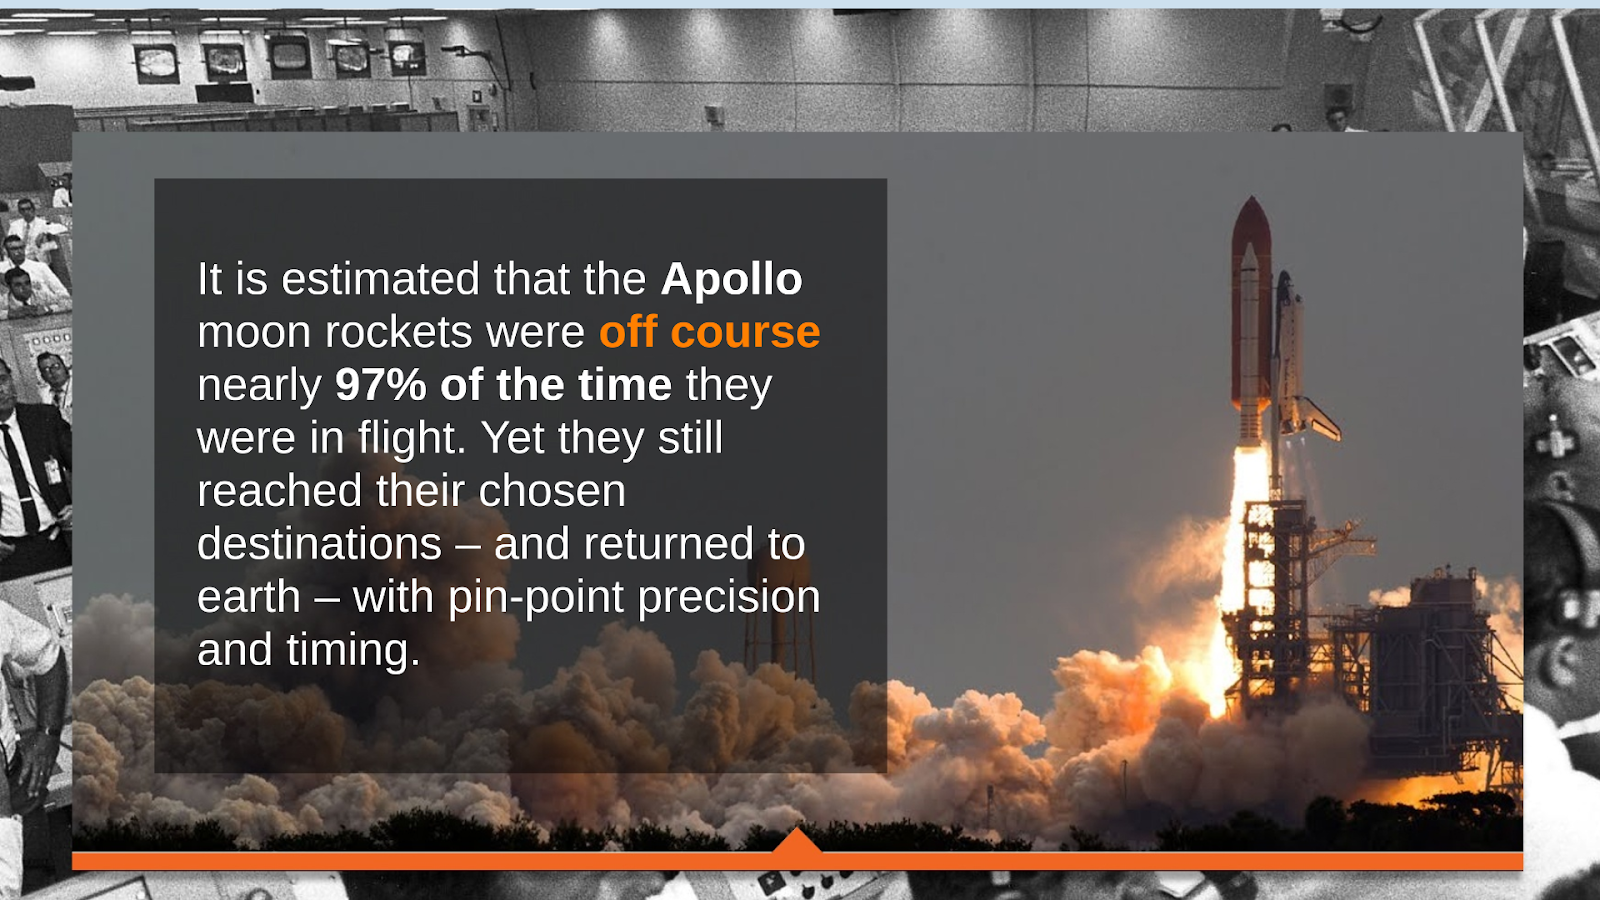 The apollo rocket taking off with text saying how it was off course 97% of the time it was in flight.